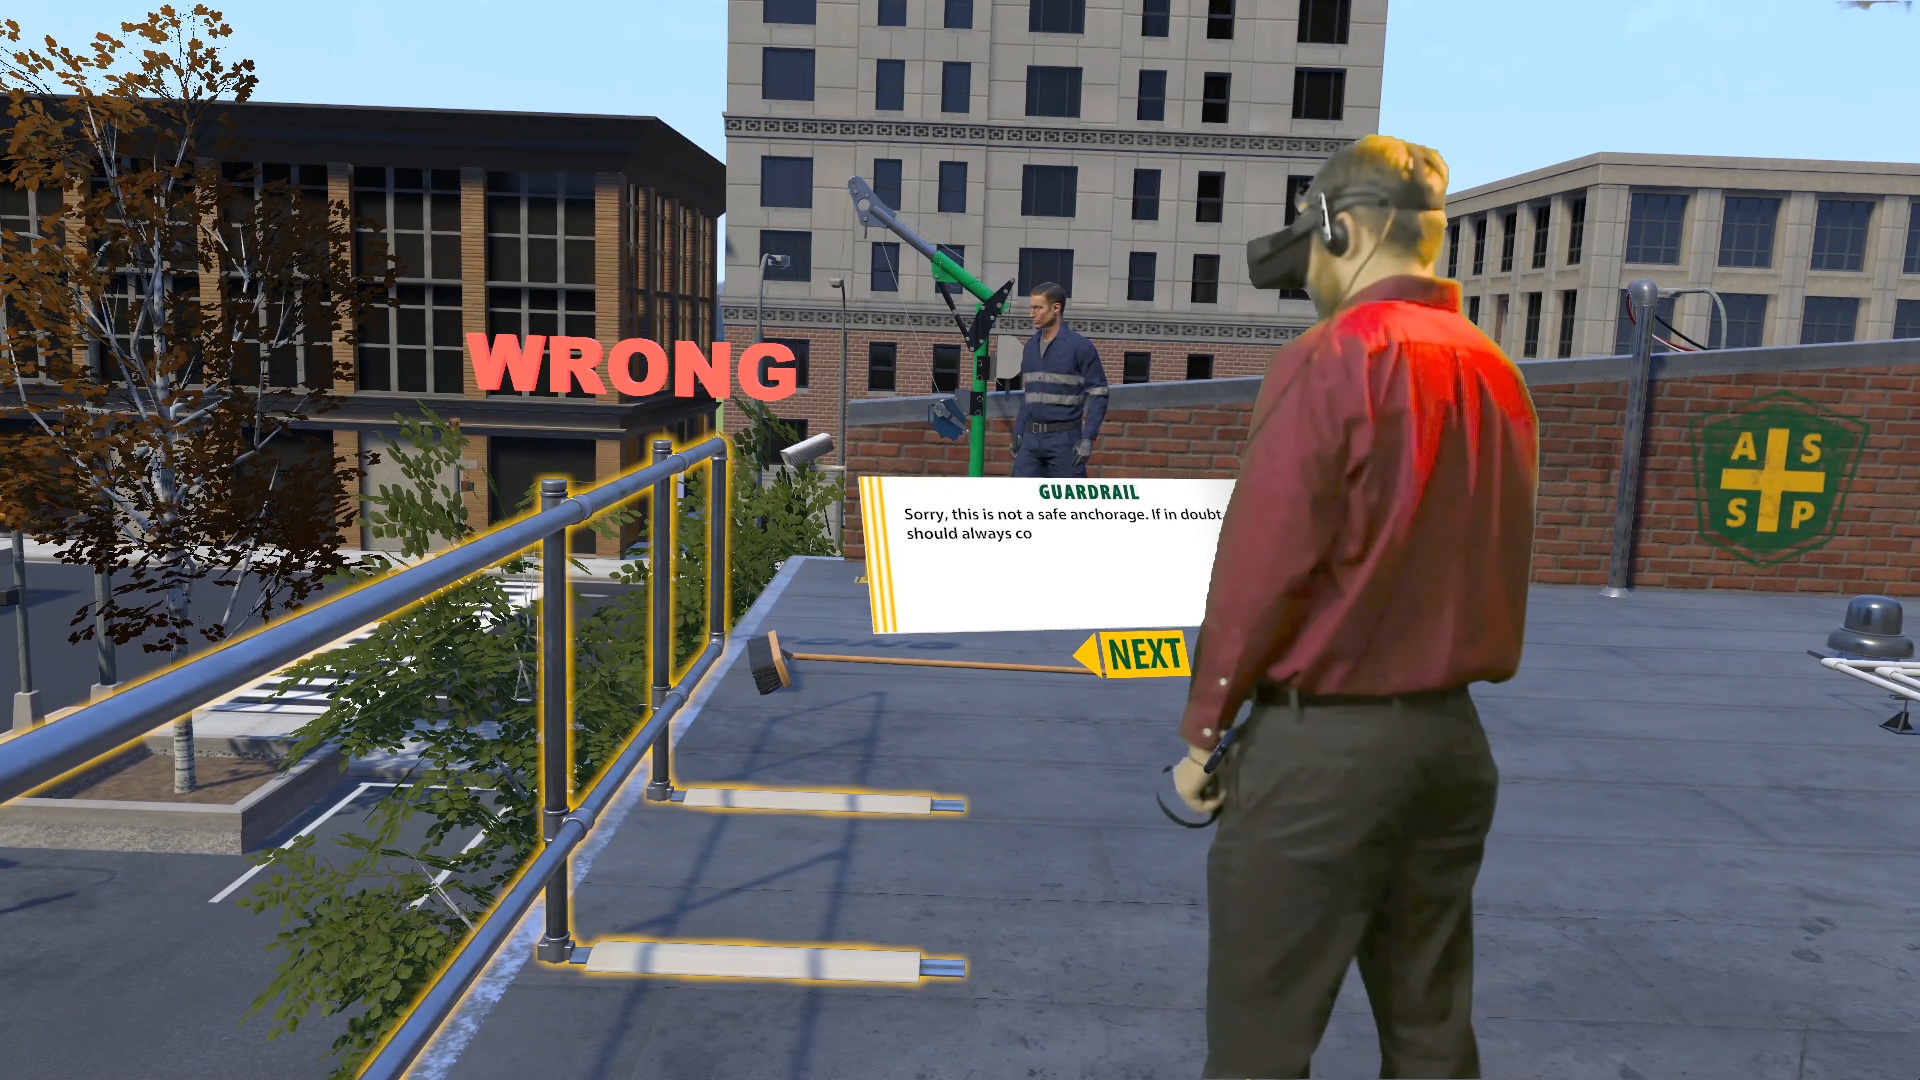 Figure 15: Training with virtual reality. Source: Arch Virtual.